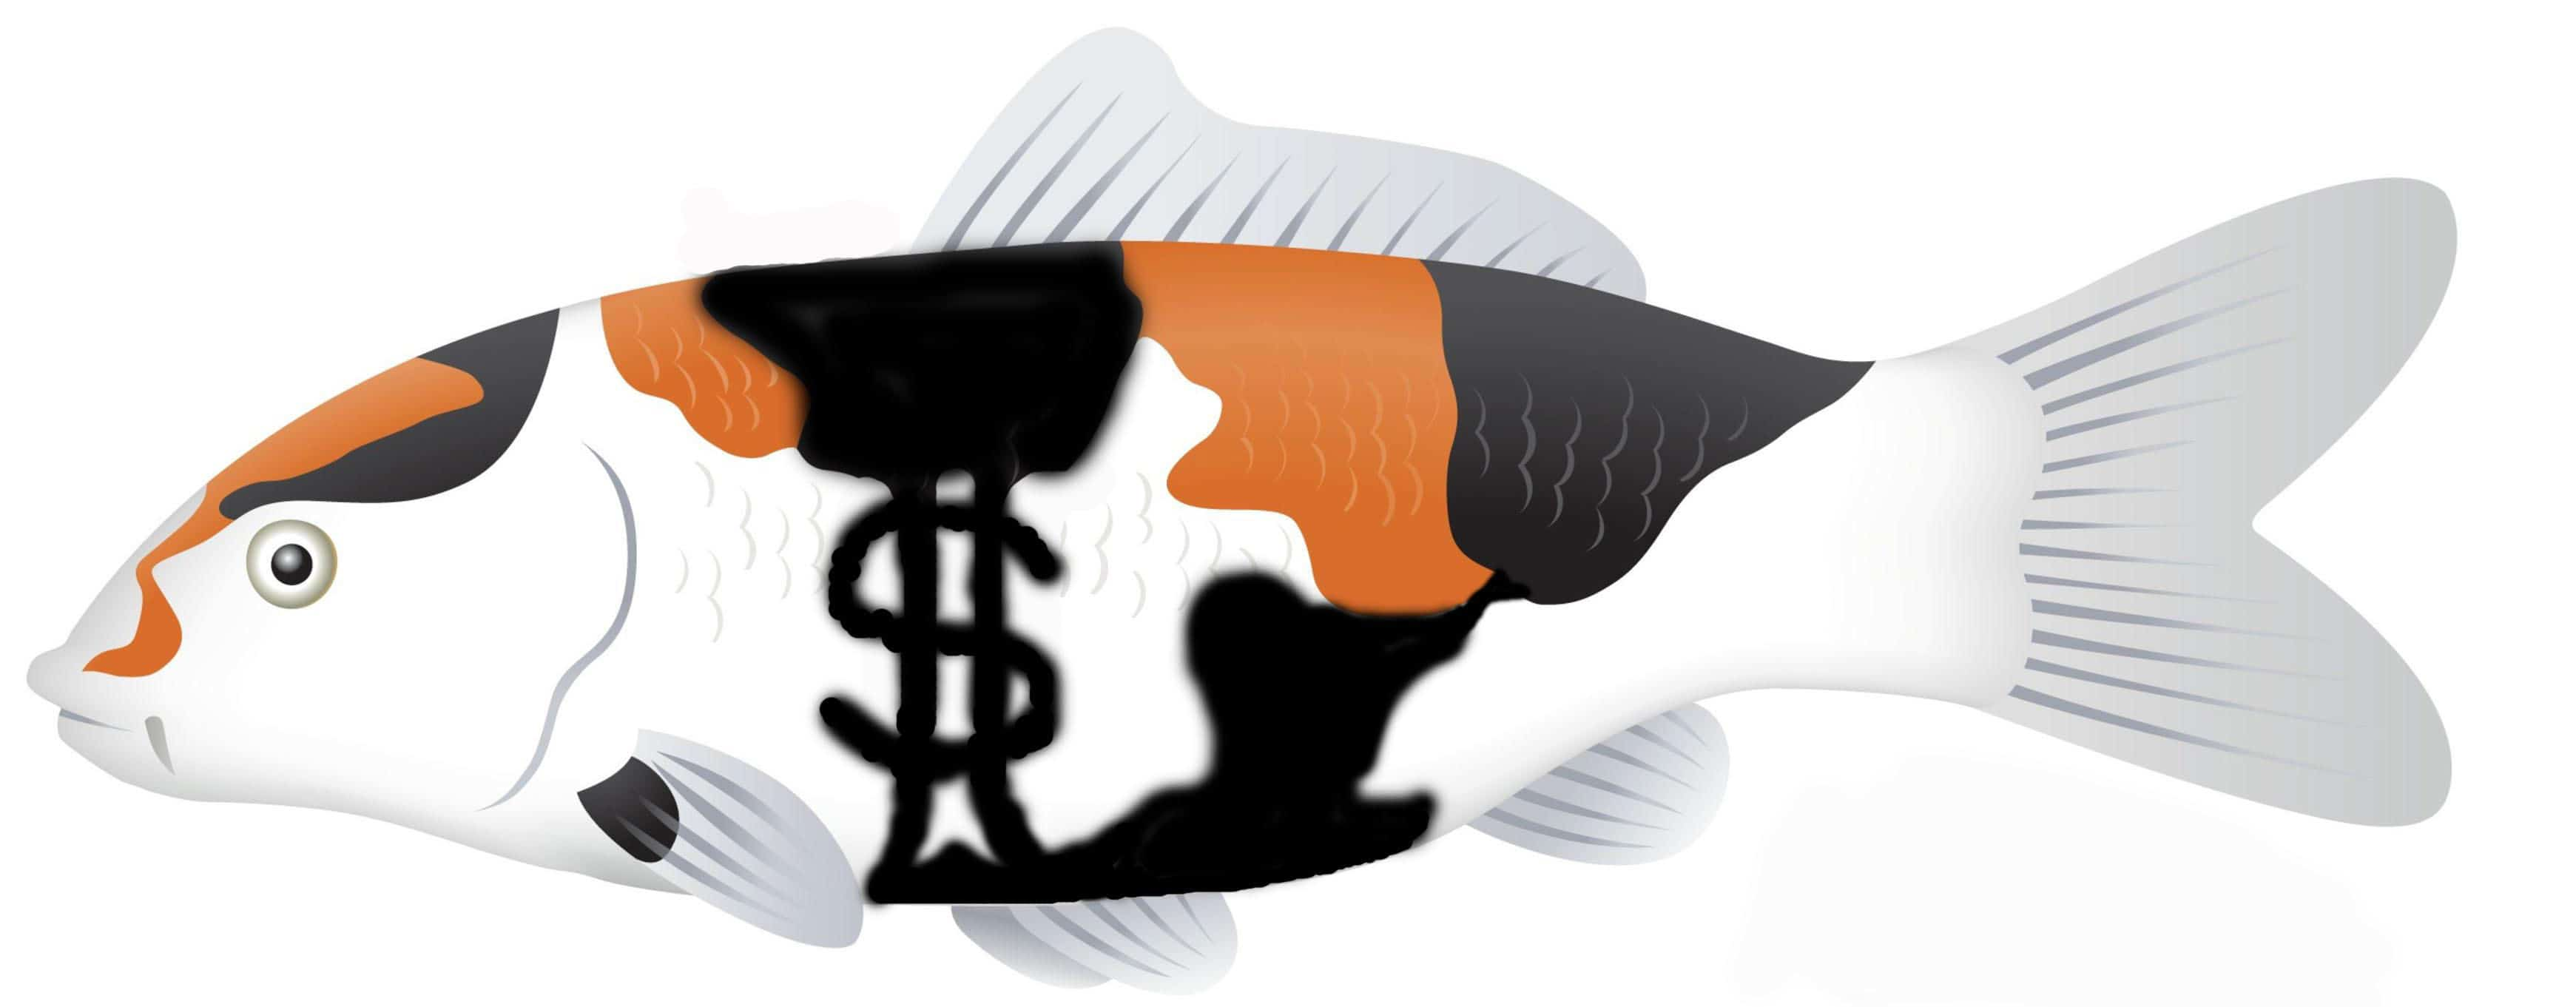 How to breed koi for profit its not as out of reach as you might think to breed koi fish for profit as thousands around the world have done with great success knowing how to do it biocorpaavc